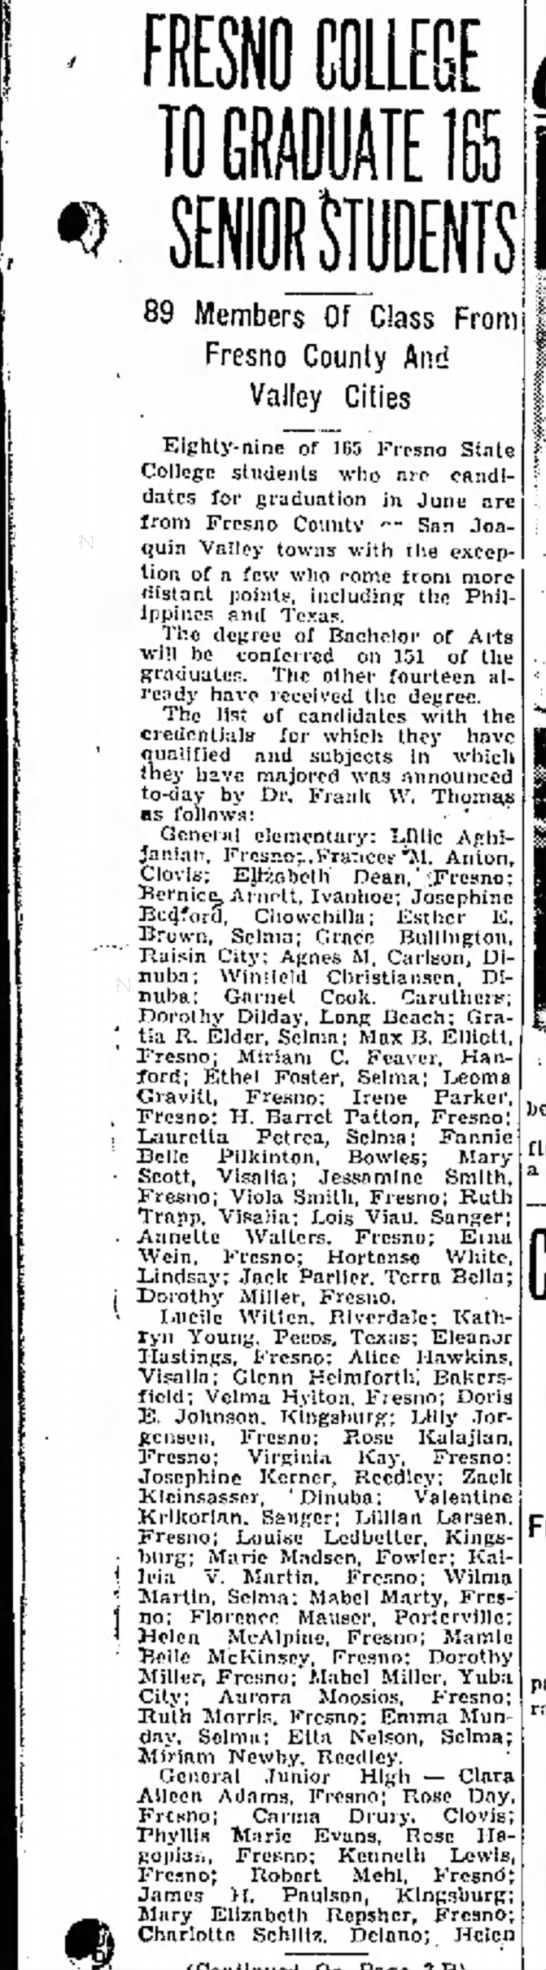 FANNIE BELLE PILKINTON